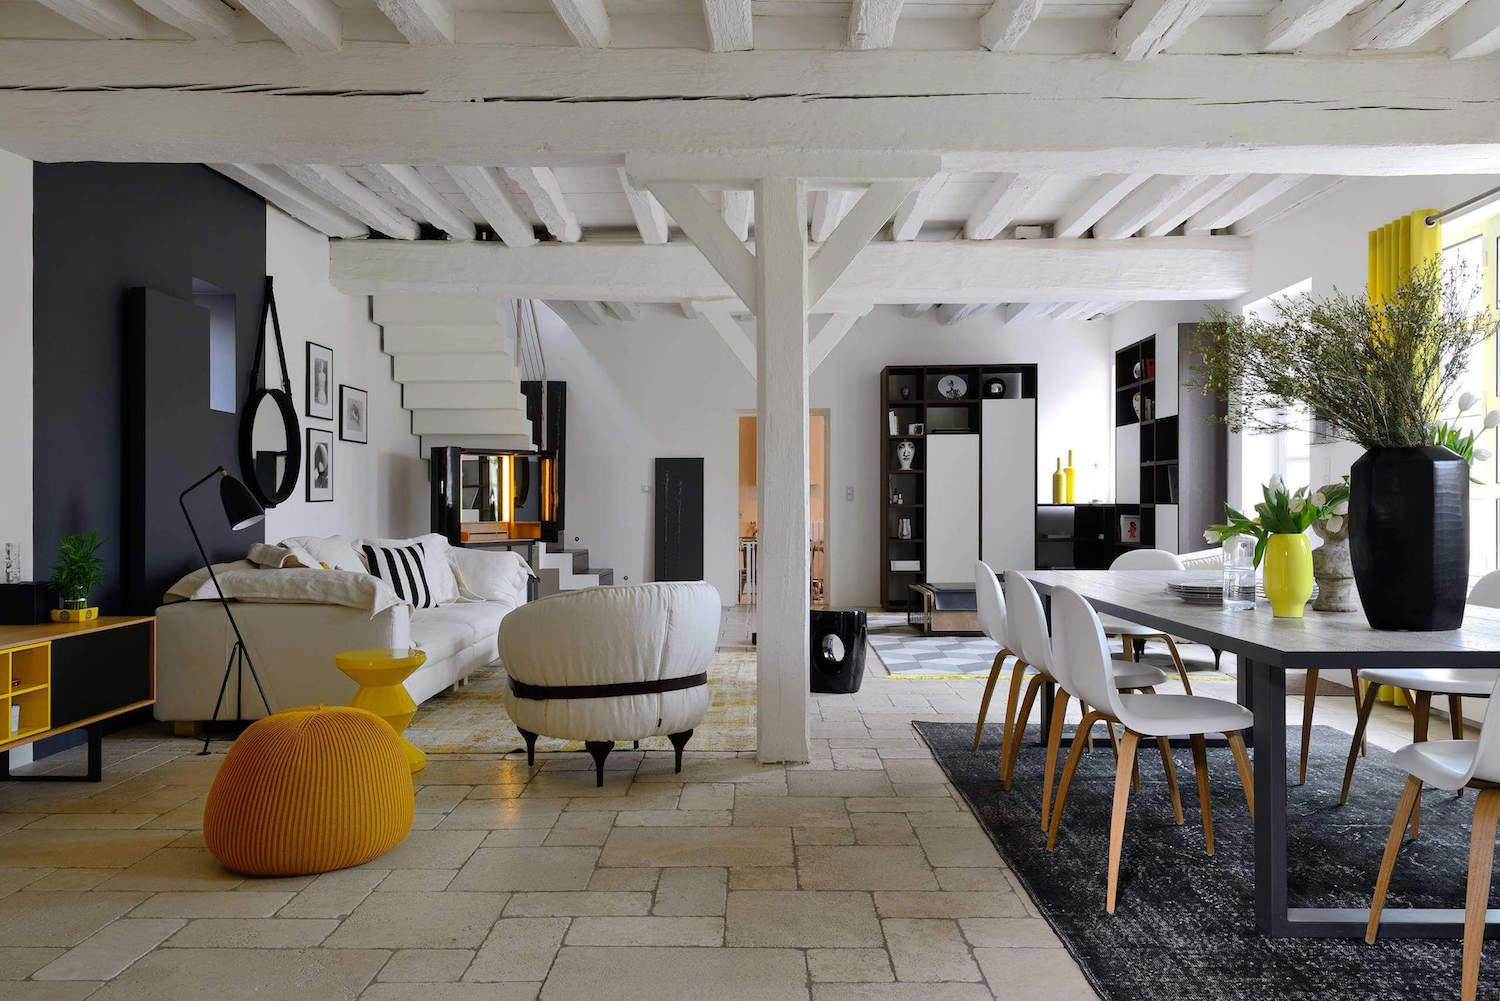 Stylish ecully house work of art located in lyon france for Art et fenetre lyon